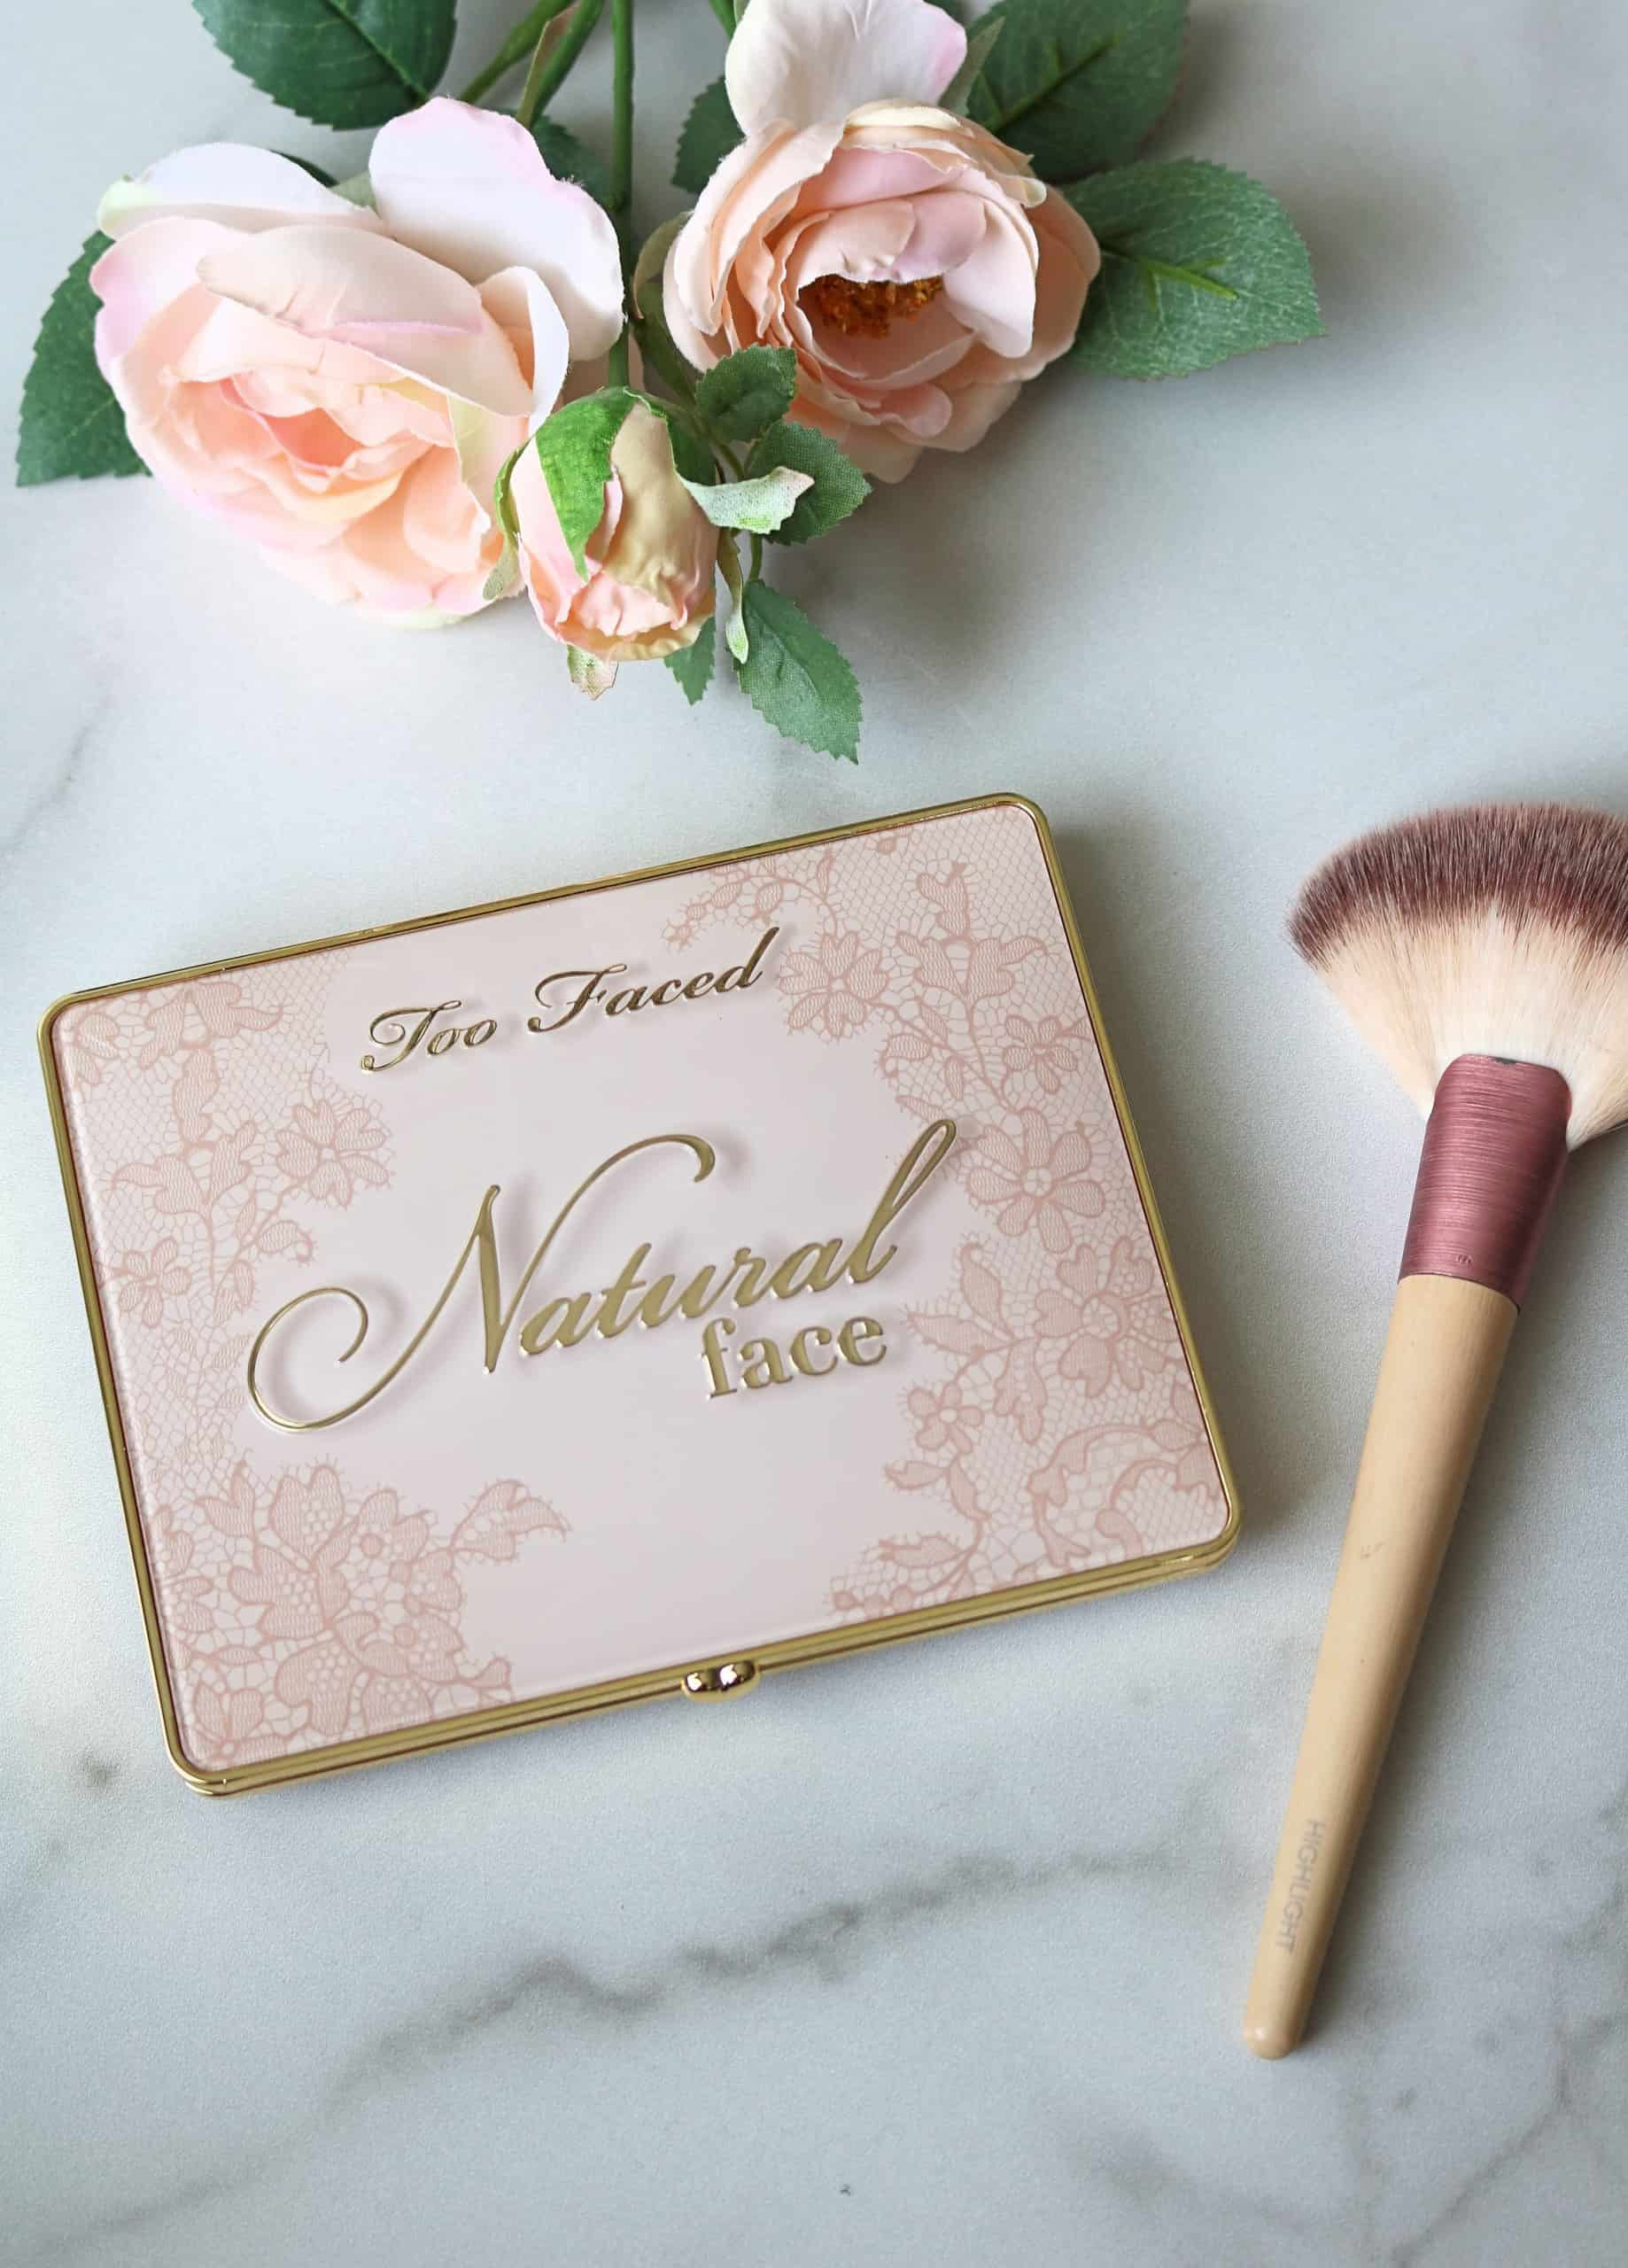 Sharing a Too Faced Natural Face Palette Review with swatches of all 6 shades. This gorgeous natural face palette includes 2 blushes, 2 highlighters, and 2 bronzers in one beautiful, travel-friendly package, perfect for summer! #toofaced #makeupreview #facepalette #summermakeup